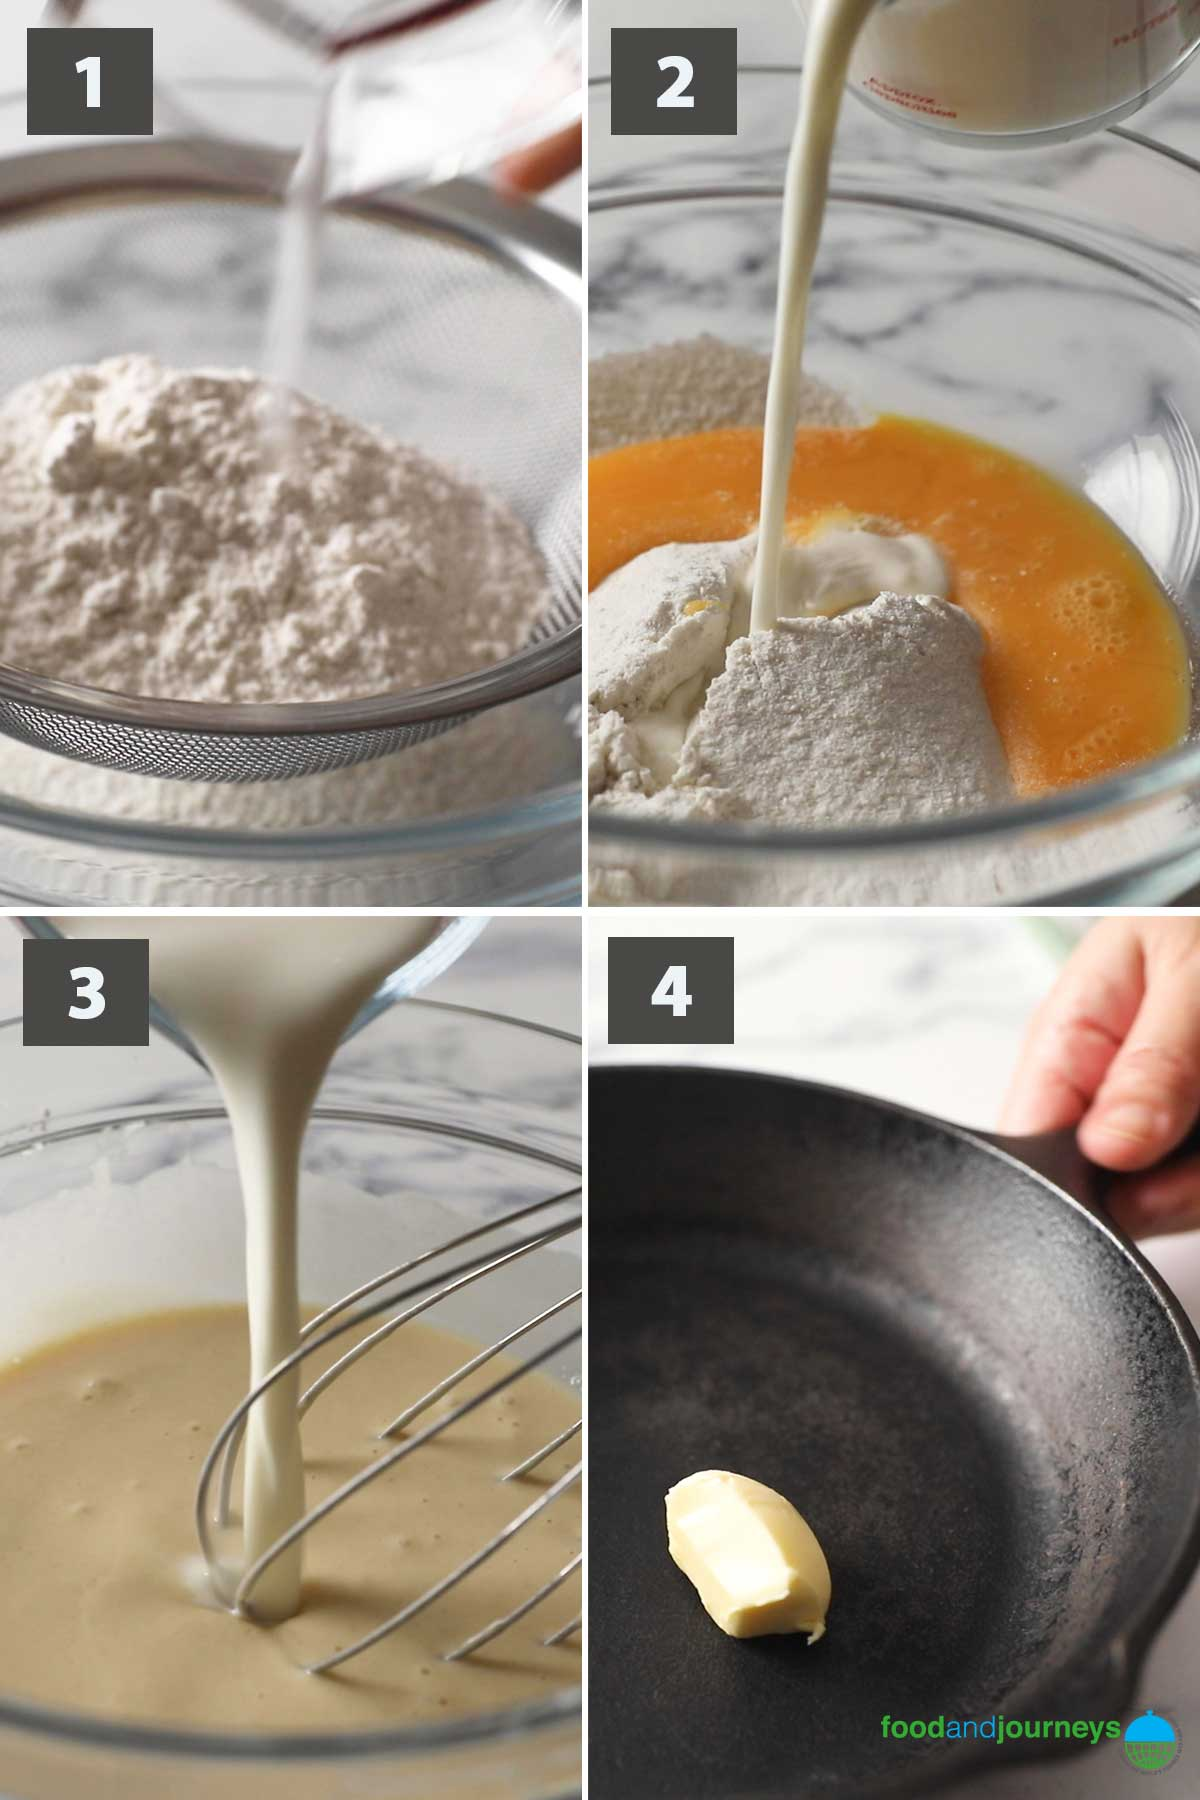 First part of a collage of images showing the step by step process on how to make Baked Pancake.